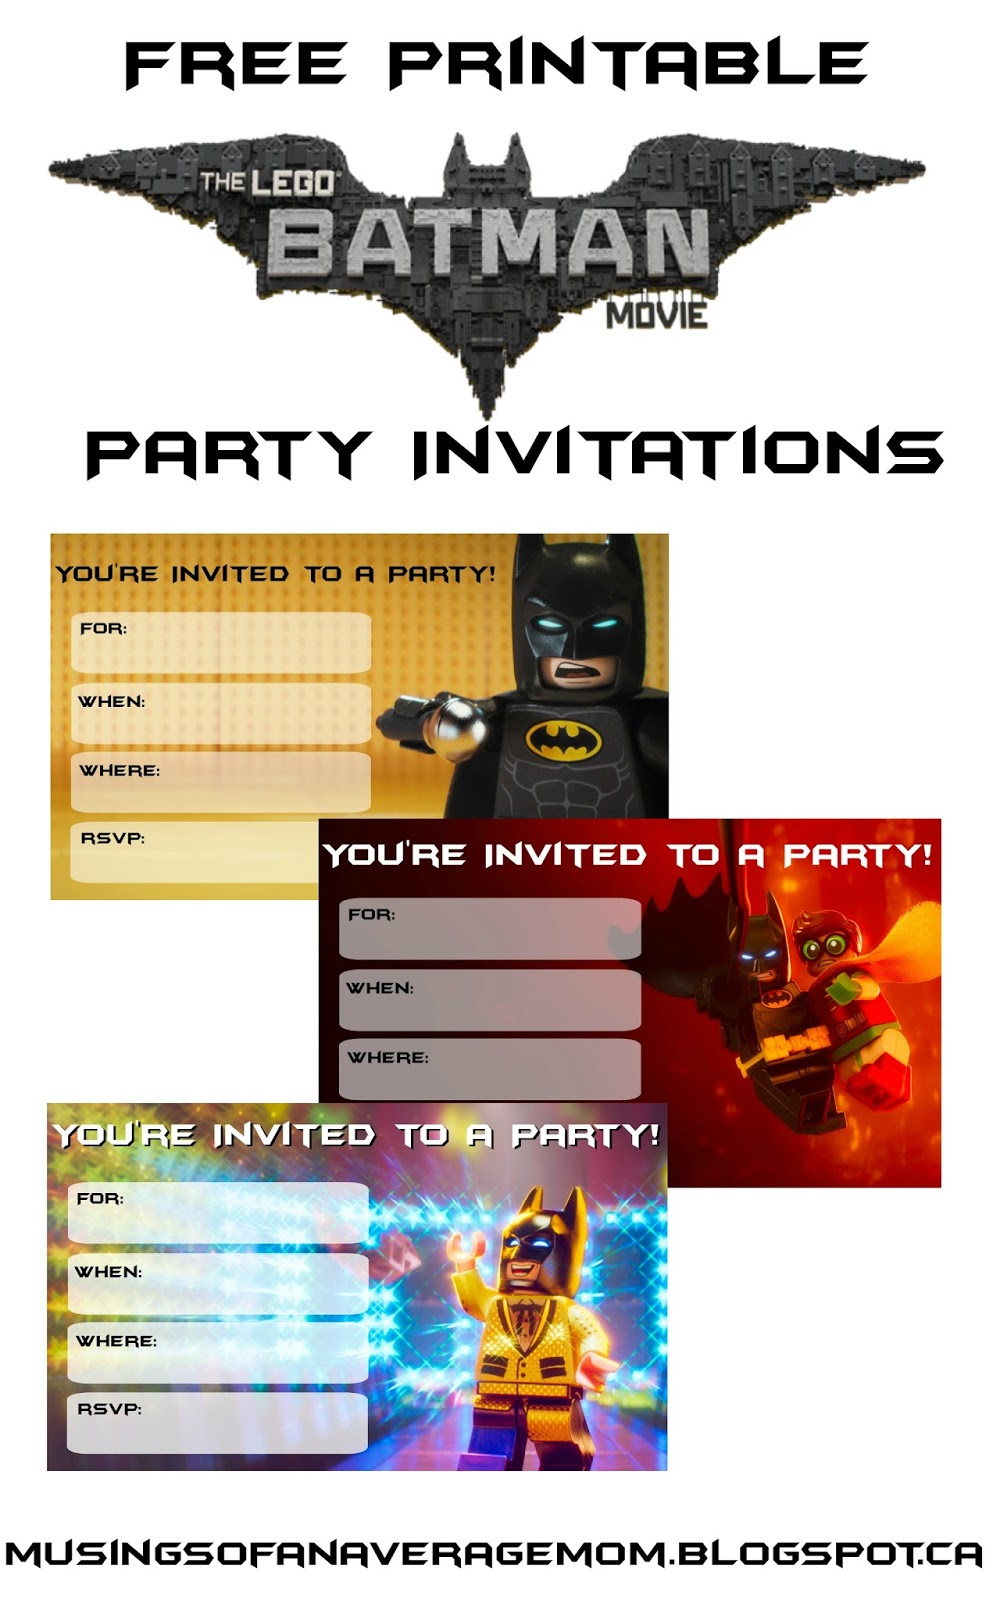 Musings of an Average Mom Everything you need for a Lego Batman Party – Lego Party Invitations Printable